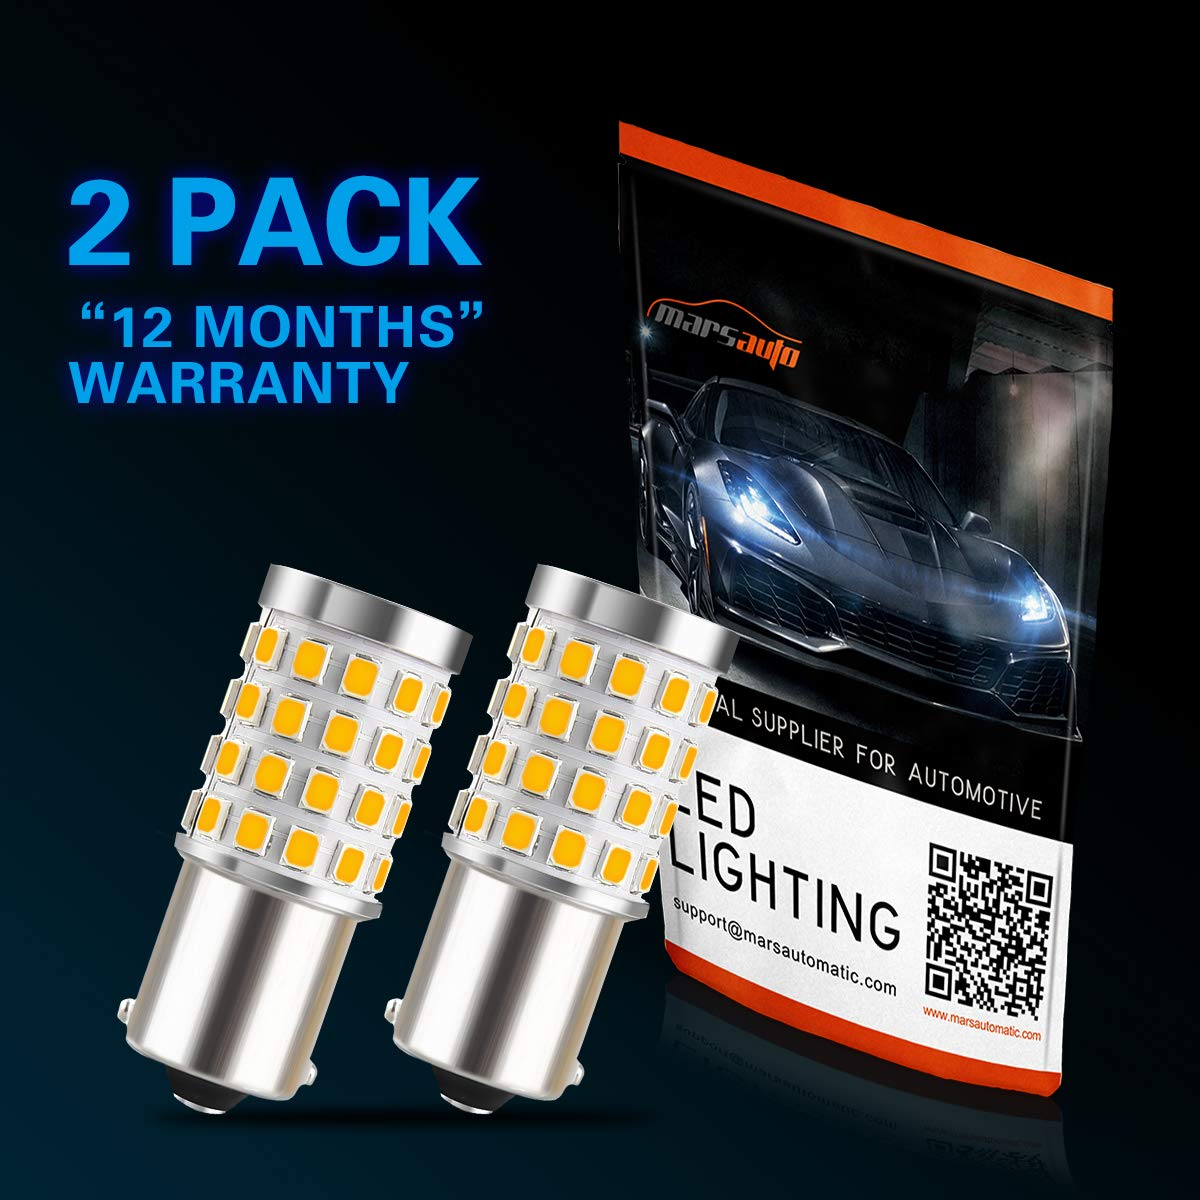 Marsauto 194 T10 LED Bulb 6000K Xenon White Car Interior Dome Map Door Courtesy License Plate Side Marker Turn Signal Brake Tail Lights Bulbs Replacement Extreme Bright